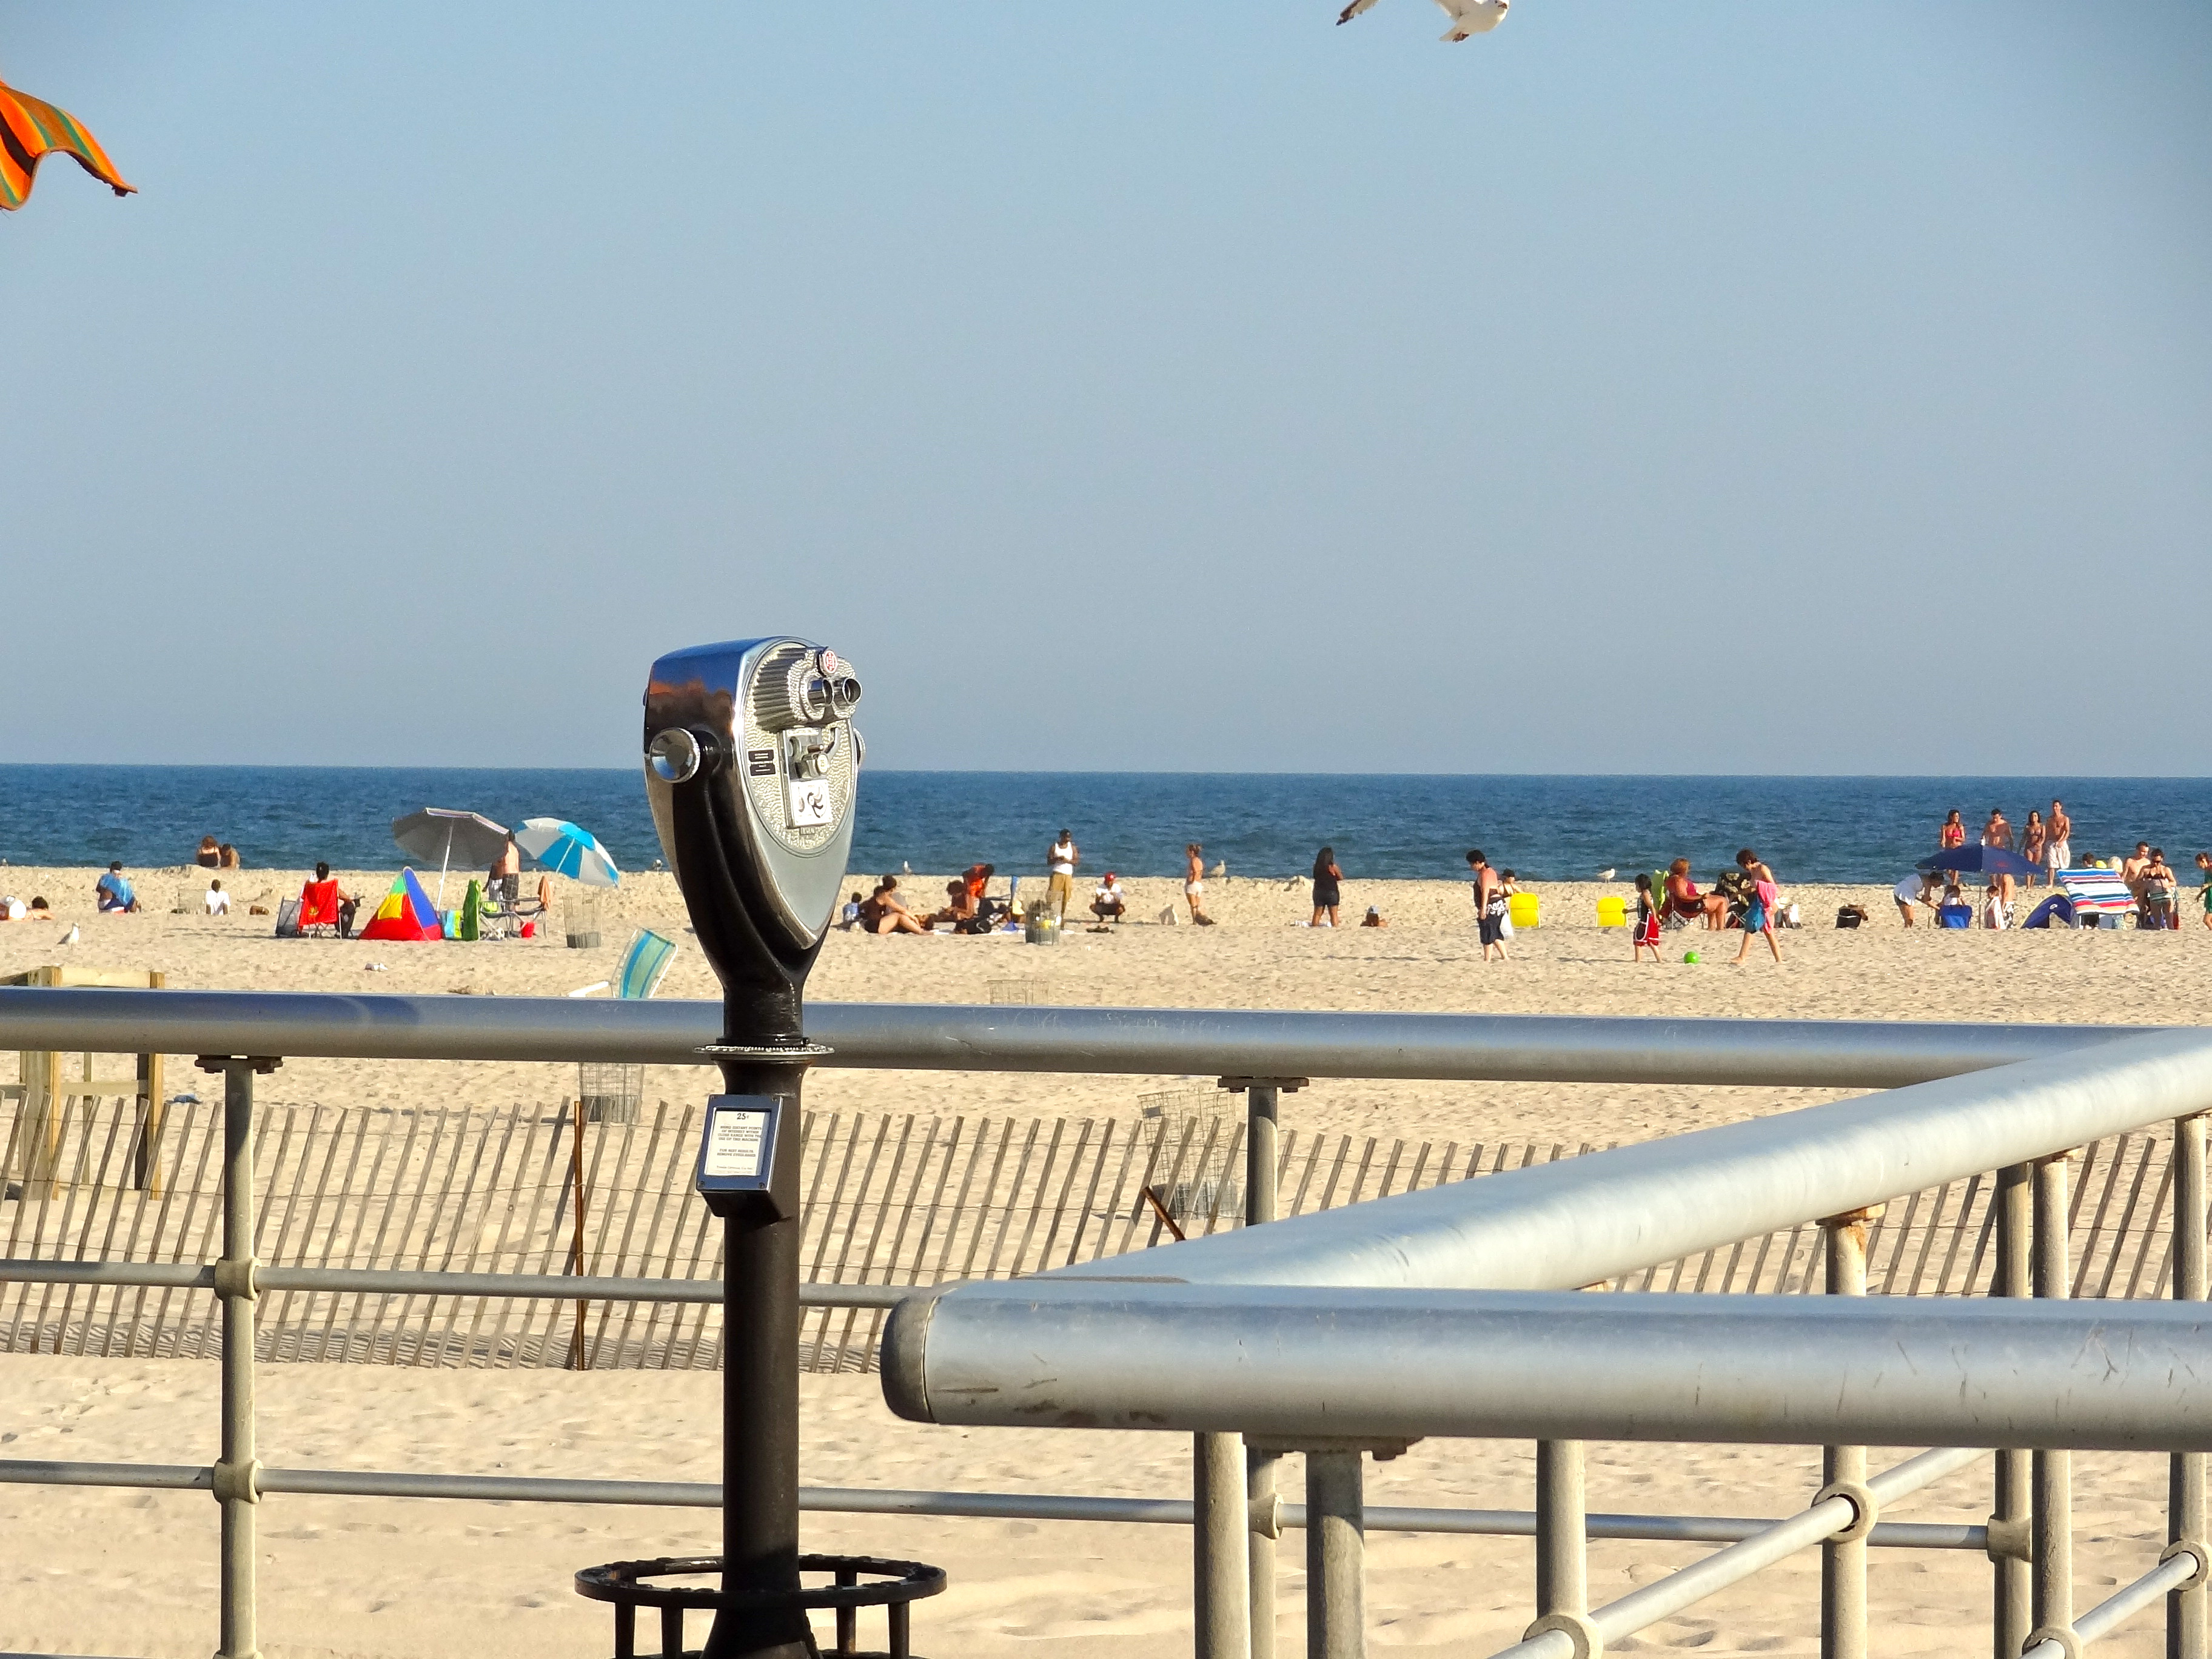 Jones beach state park weekend getaways from nyc smart for Ny weekend getaways for couples